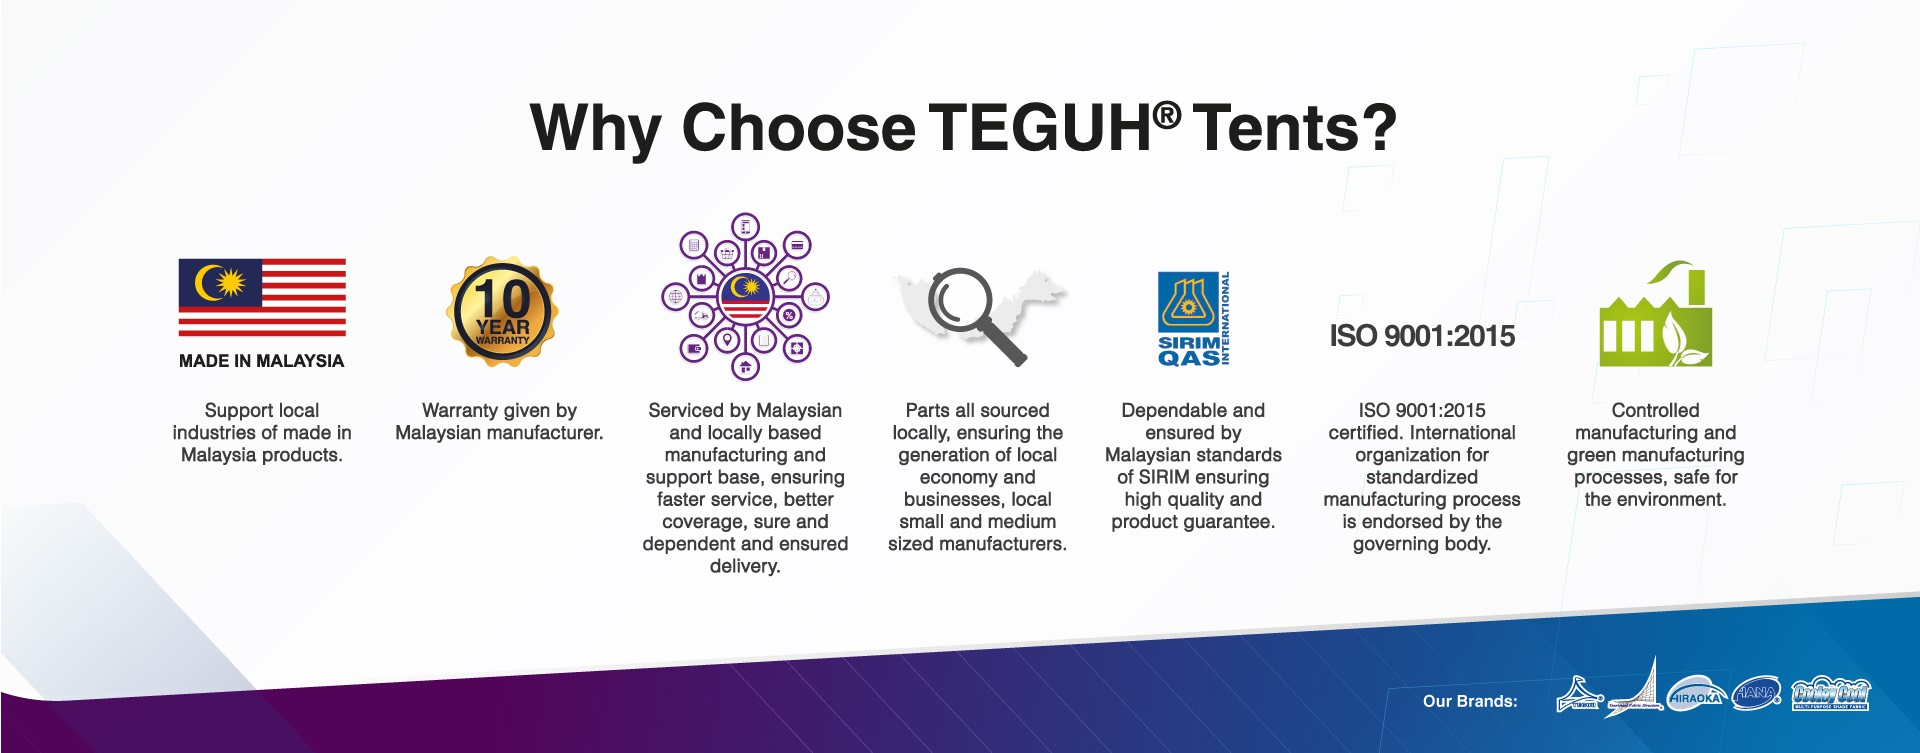 Why choose Teguh tent